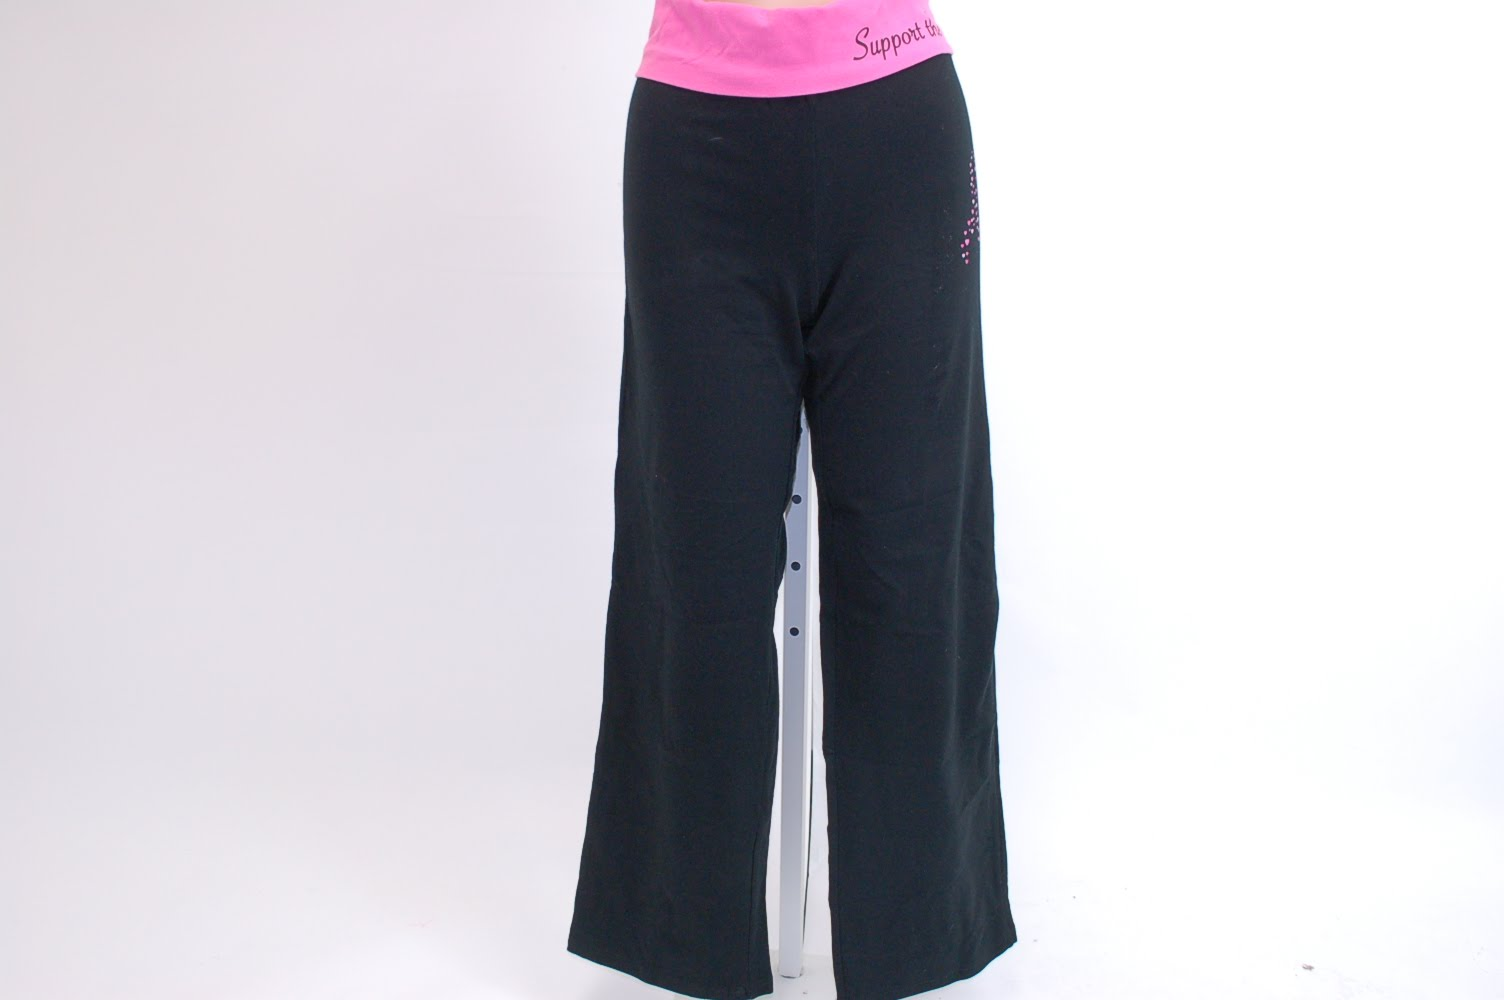 1c48cbea4cb8d ... American Crown Women's Support the Cure Yoga Pants Large - Black/Pink  ...